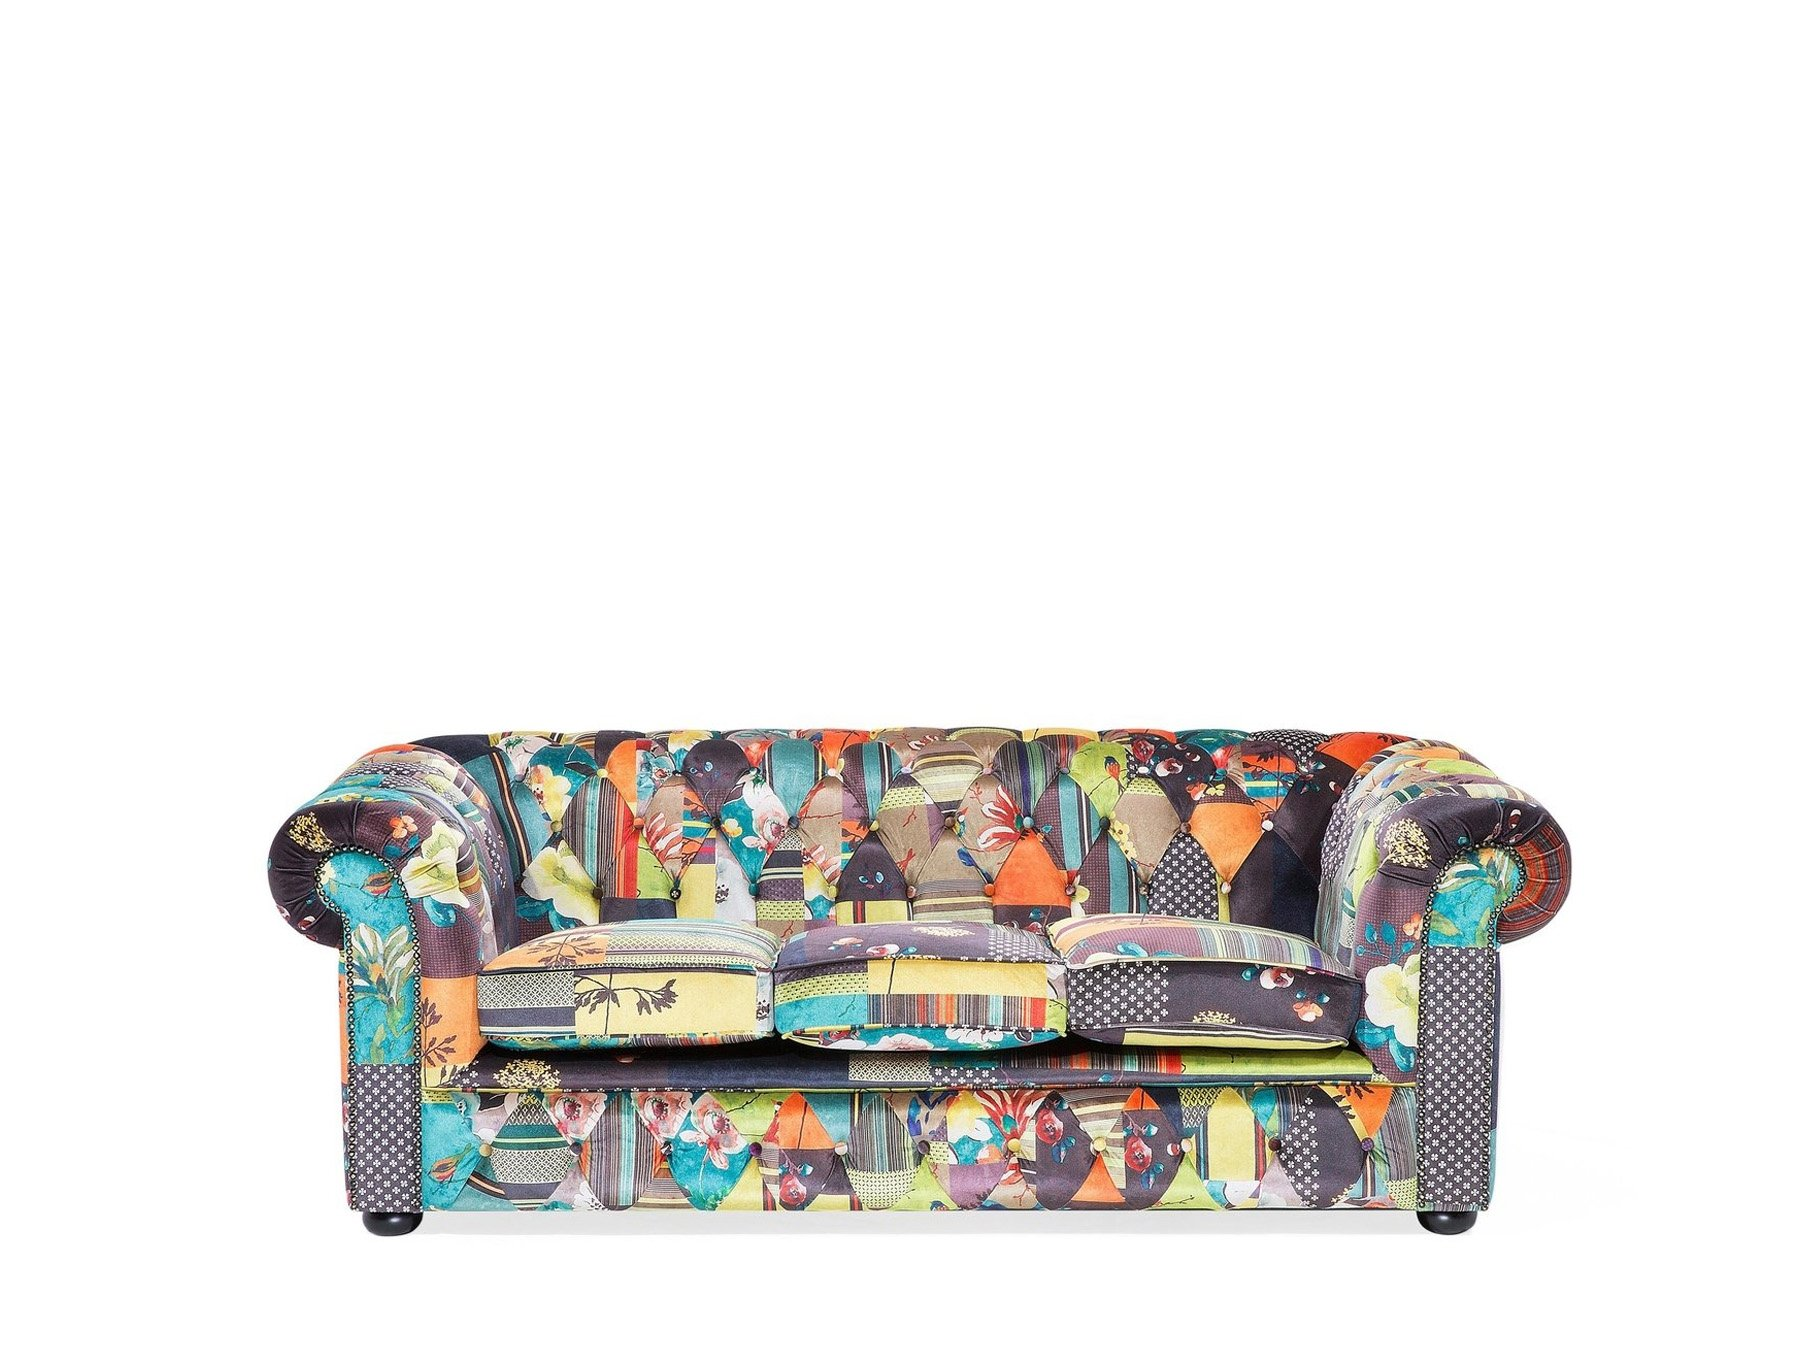 Full Size of Dfs Patchwork Sofa Ebay Design Furniture Covers Slipcovers The Range Amazon Uk 3 Seater Buttoned Yellow Accents Carmen Chesterfield Gebraucht Alternatives Sofa Sofa Patchwork